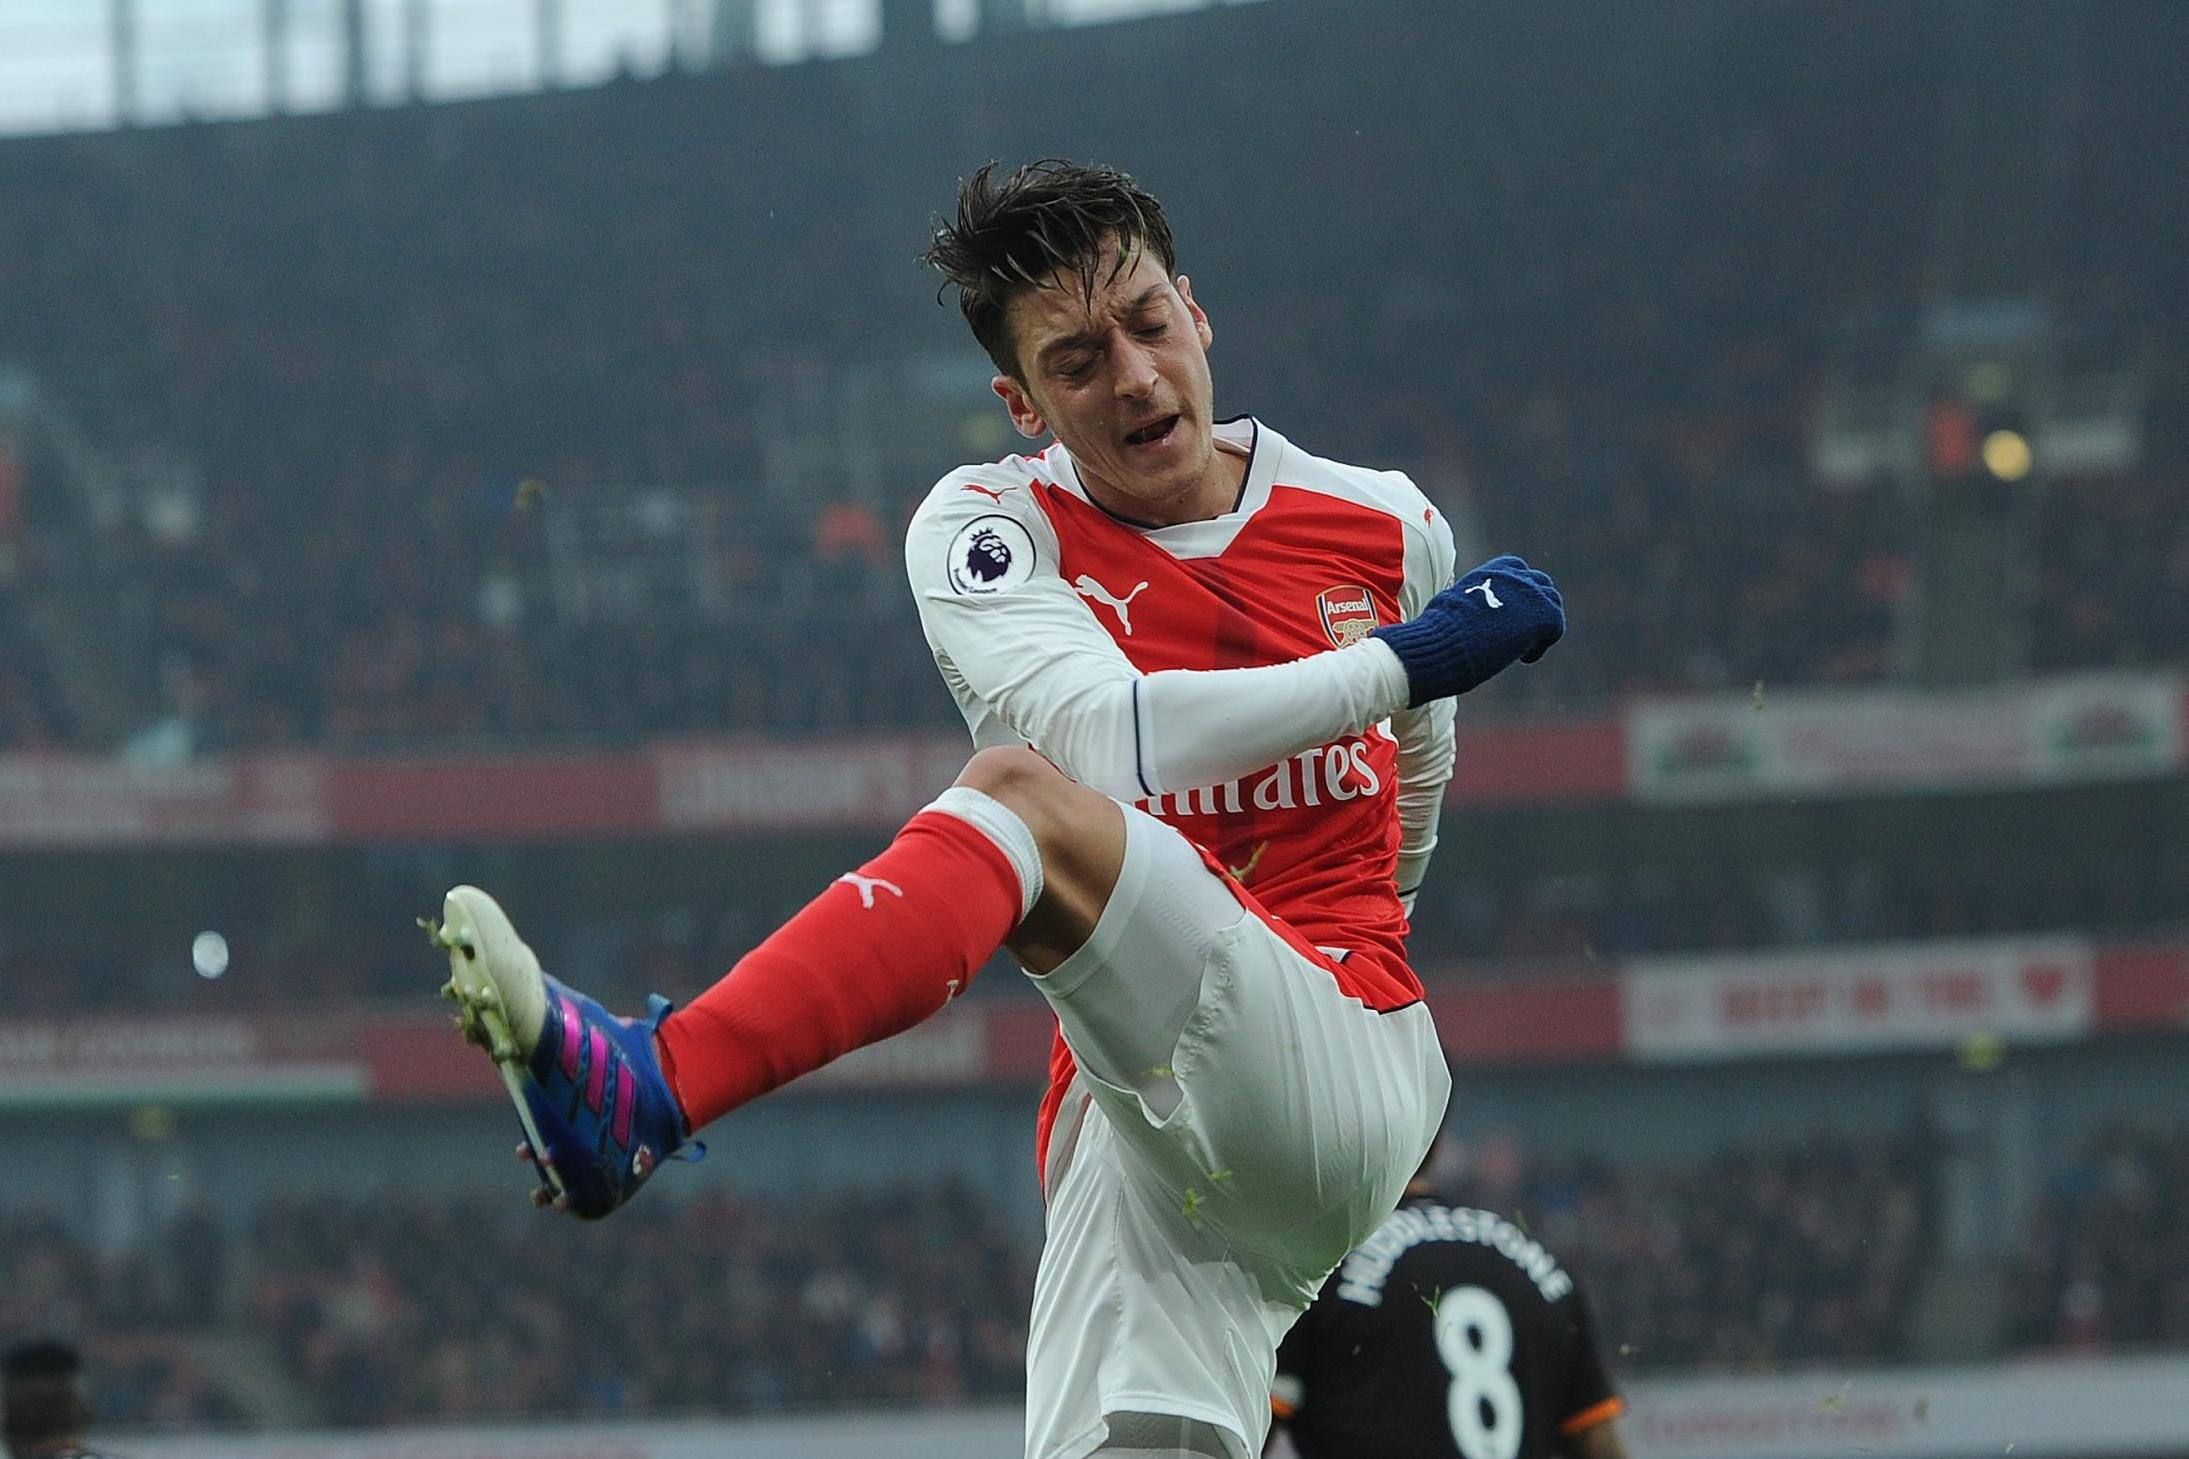 Mesut Ozil: My Body Language or Style Will Never Change